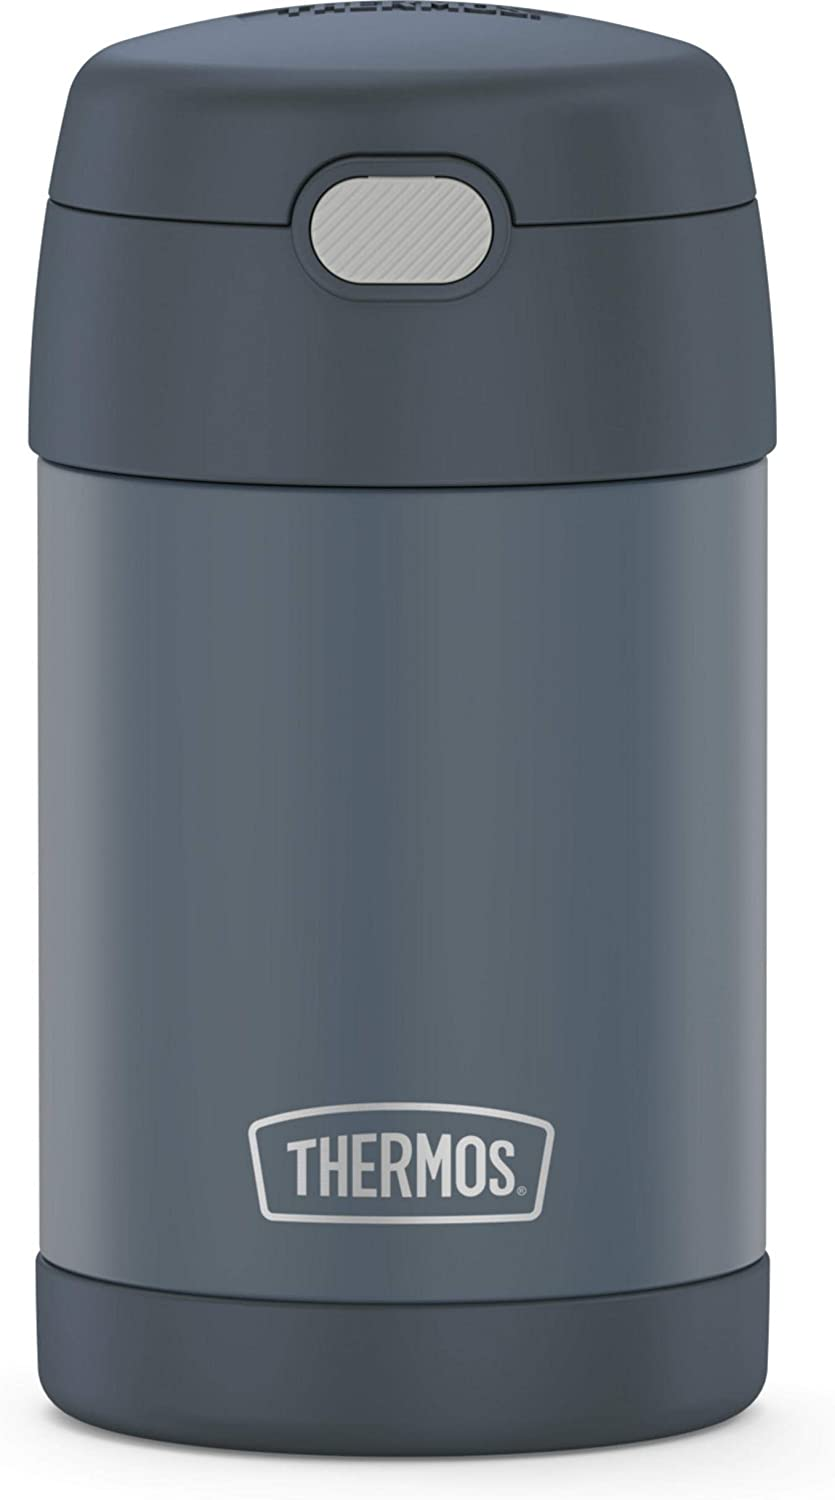 THERMOS FUNTAINER 16 Ounce Stainless Steel Vacuum Insulated Food Jar with Folding Spoon, Slate Stone